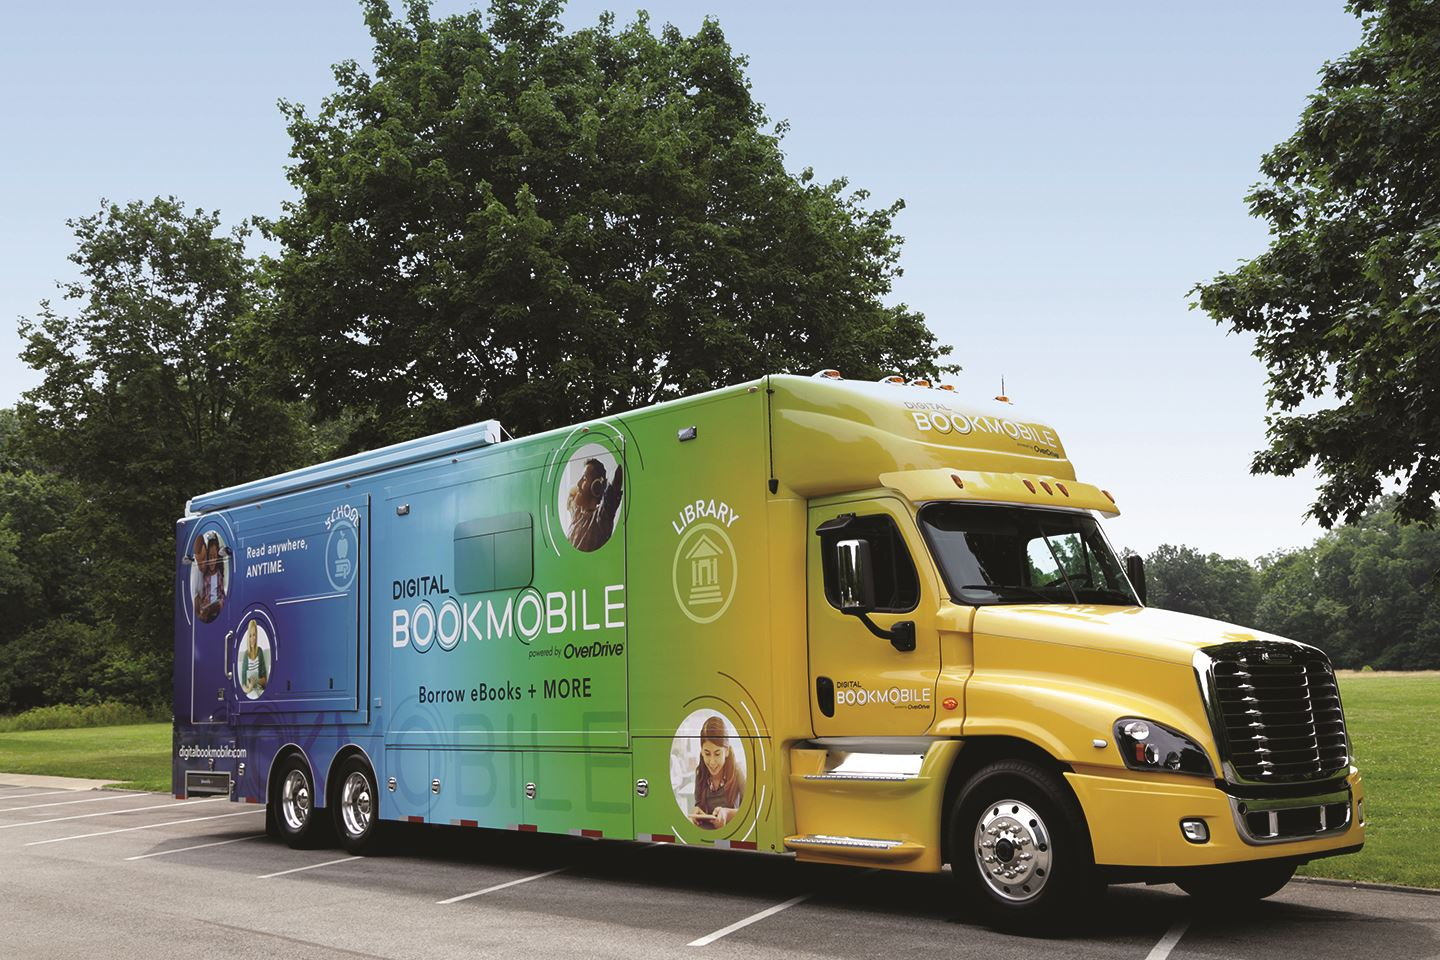 OverDrive Digital Bookmobile